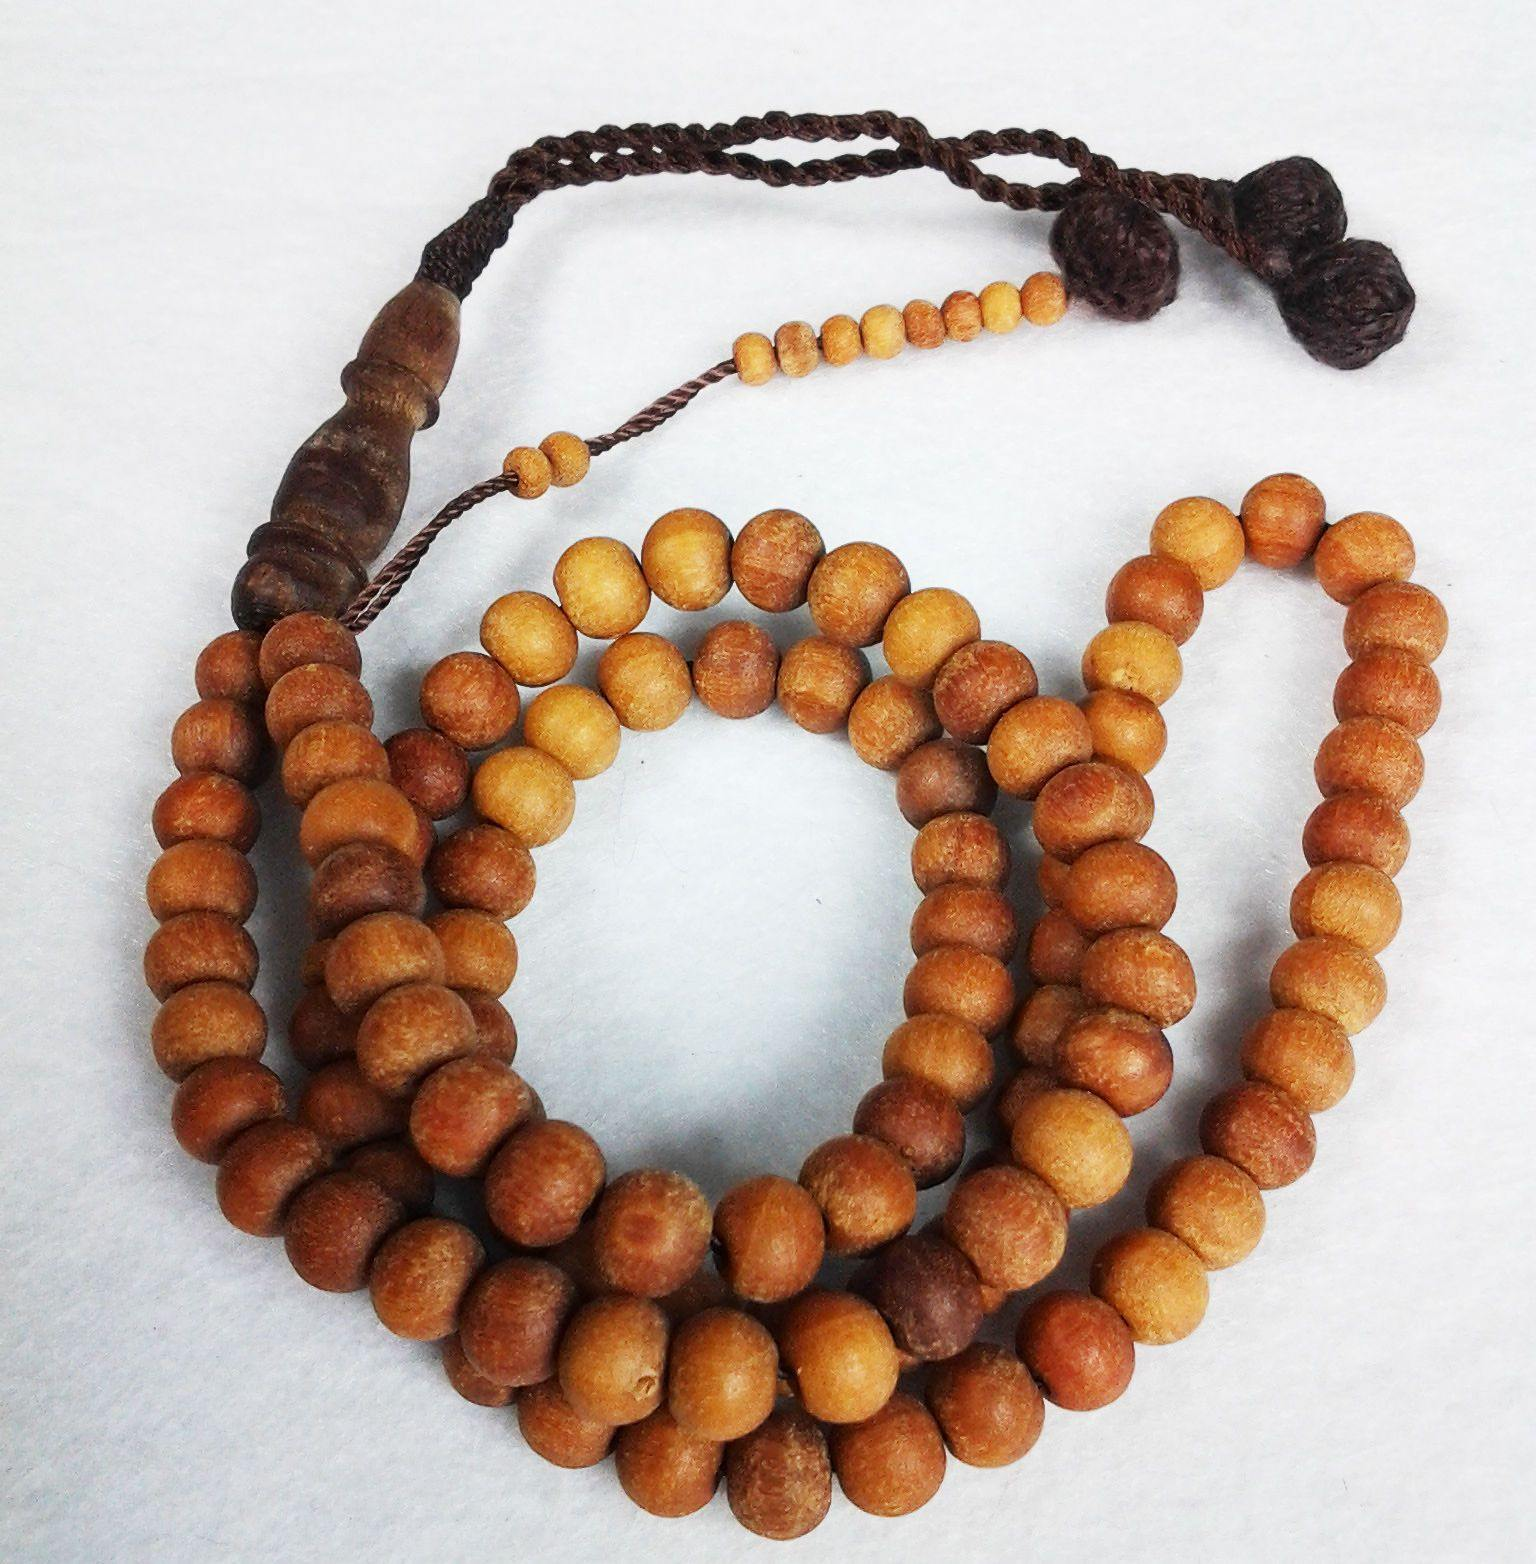 Natural Sandalwood Islam Muslim Prayer Beads 99 Masbaha 8mm Smell-so-good